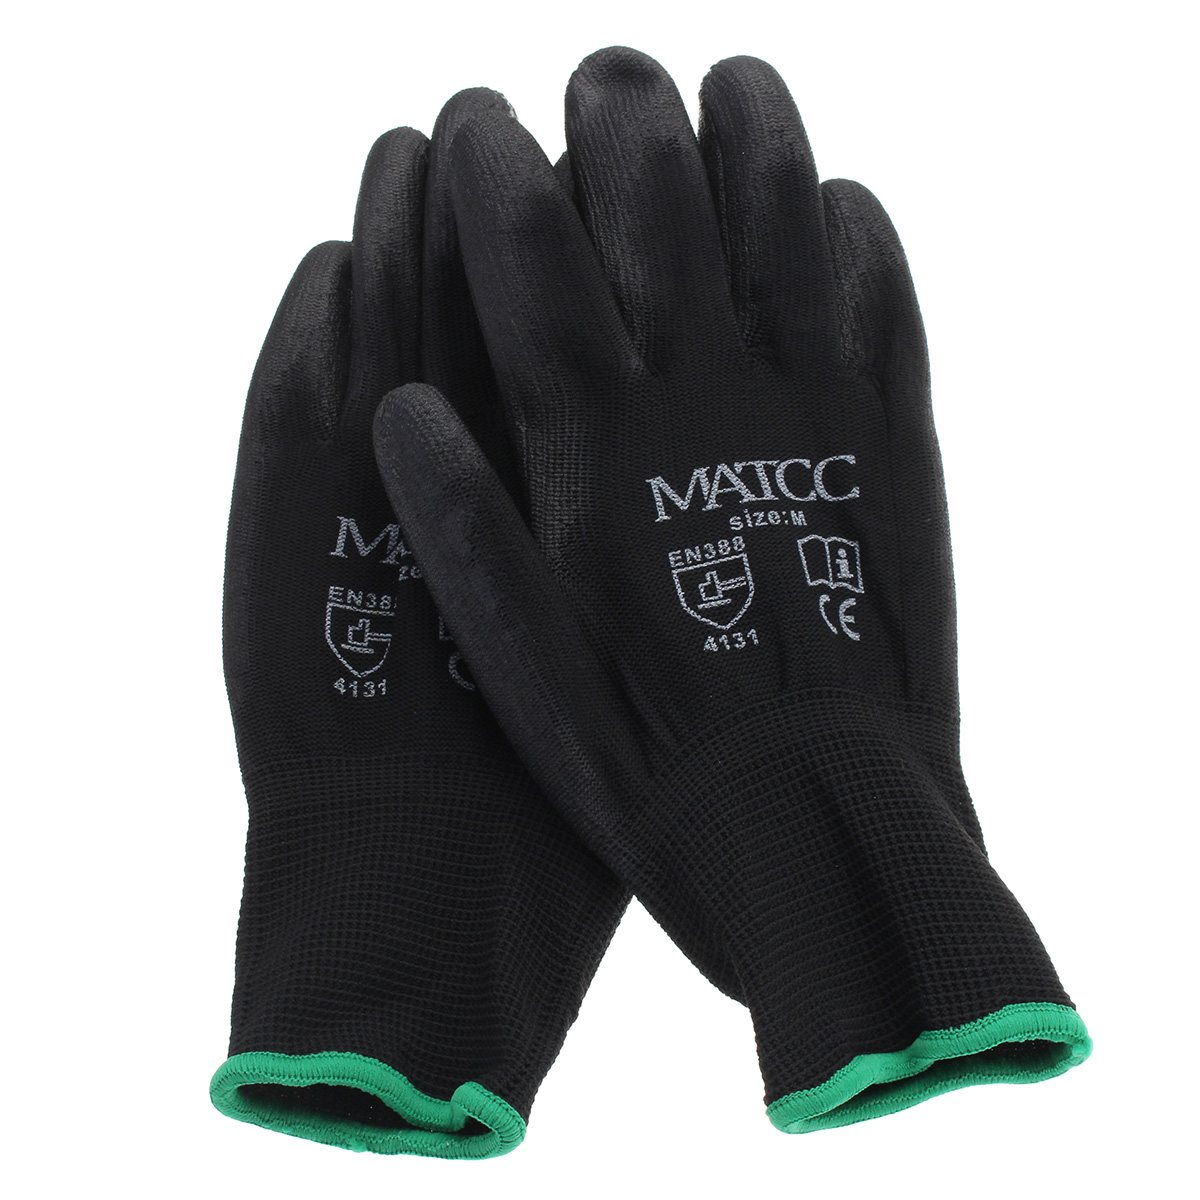 цены Safurance 12Pairs PU Nitrile Coated Safety Work Gloves Garden Builders Grip Size M/L/XL Workplace Safety